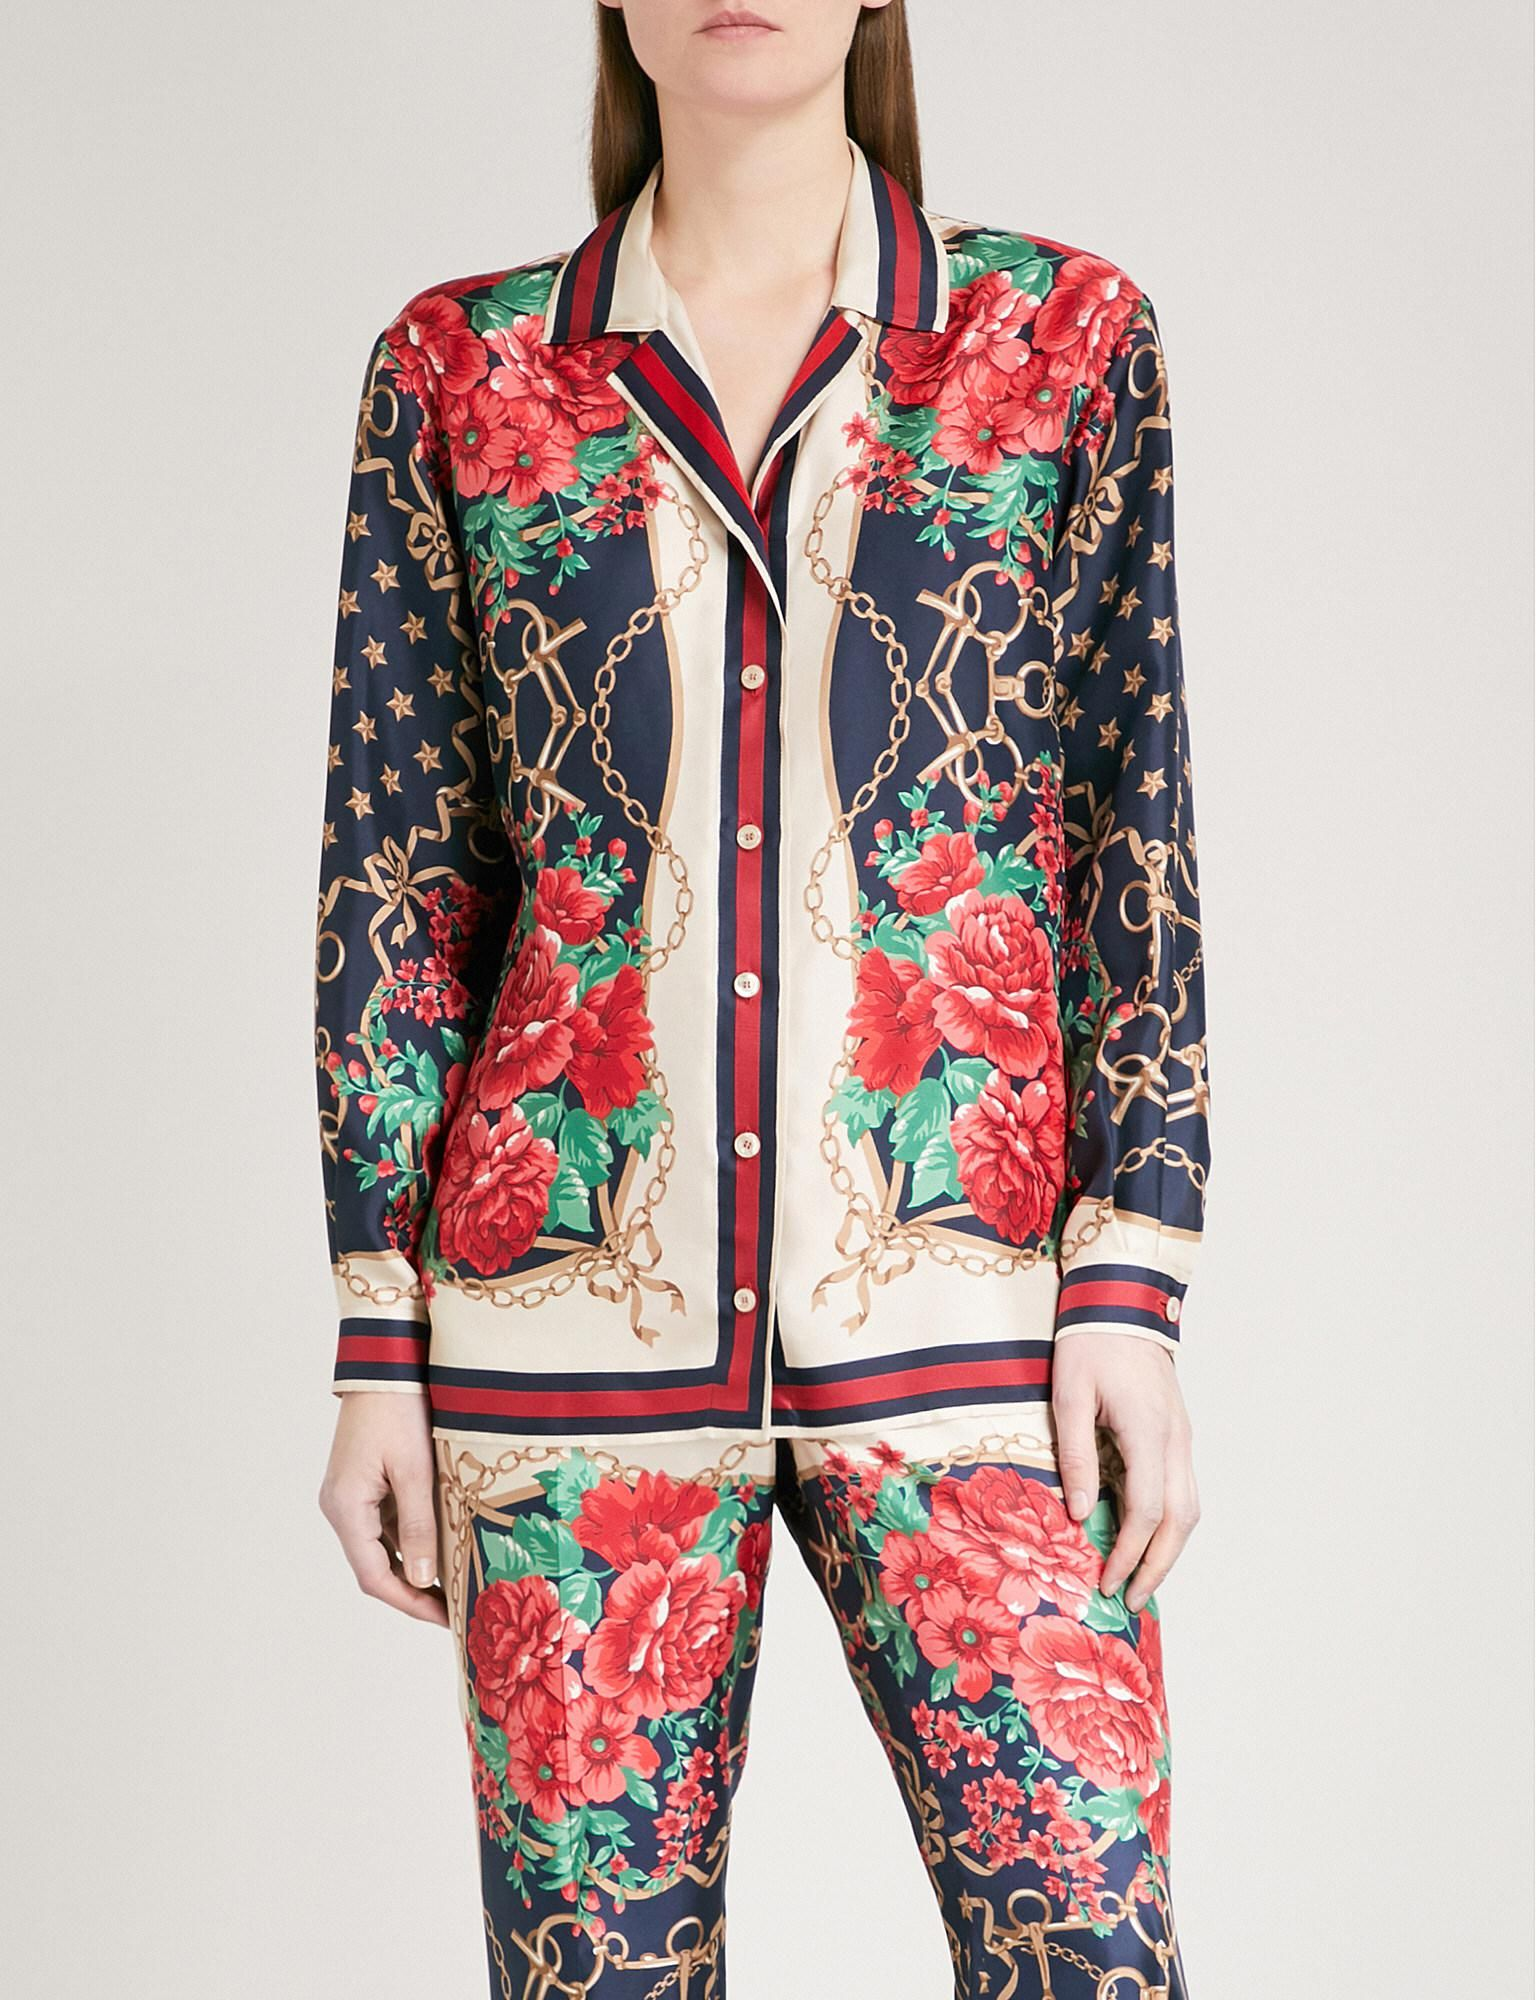 8bbcaad5c Women's Floral Chain Print Shirt in 2019 | gucci | Gucci shirts ...